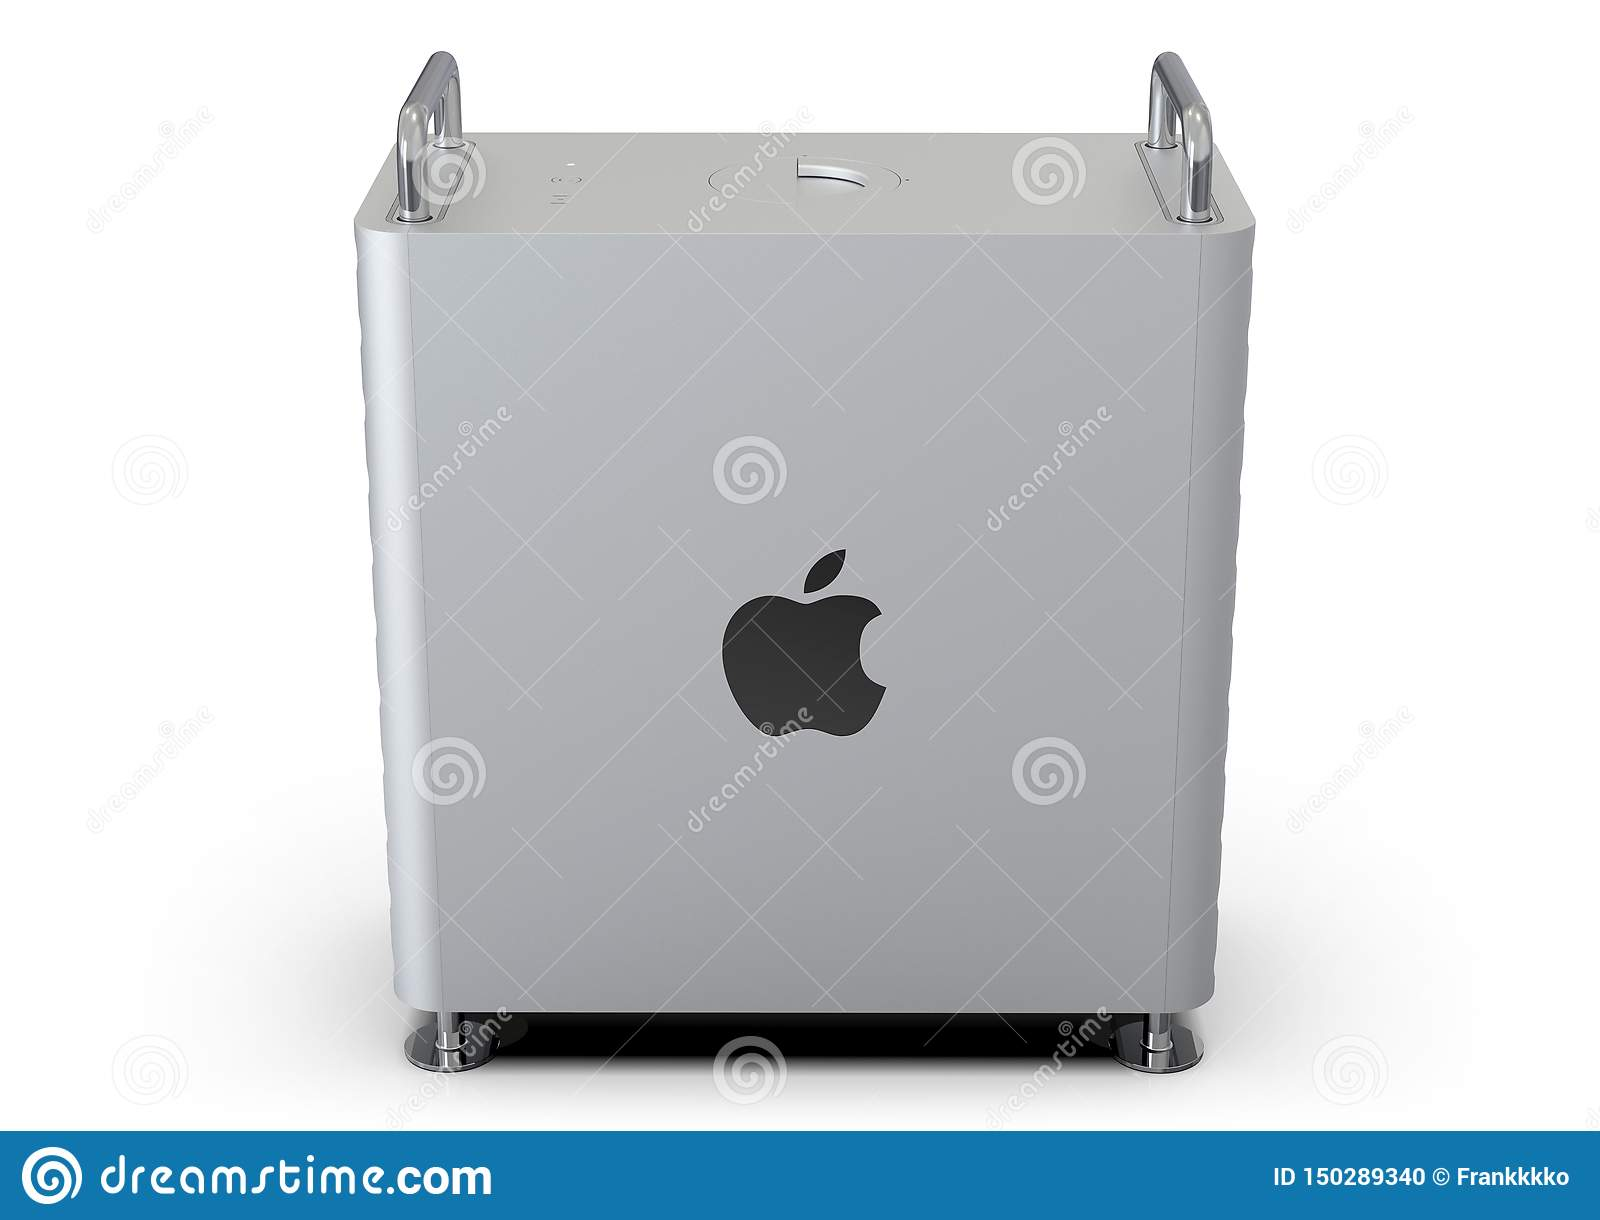 Equipo de escritorio 2019, lateral de Apple Mac Pro